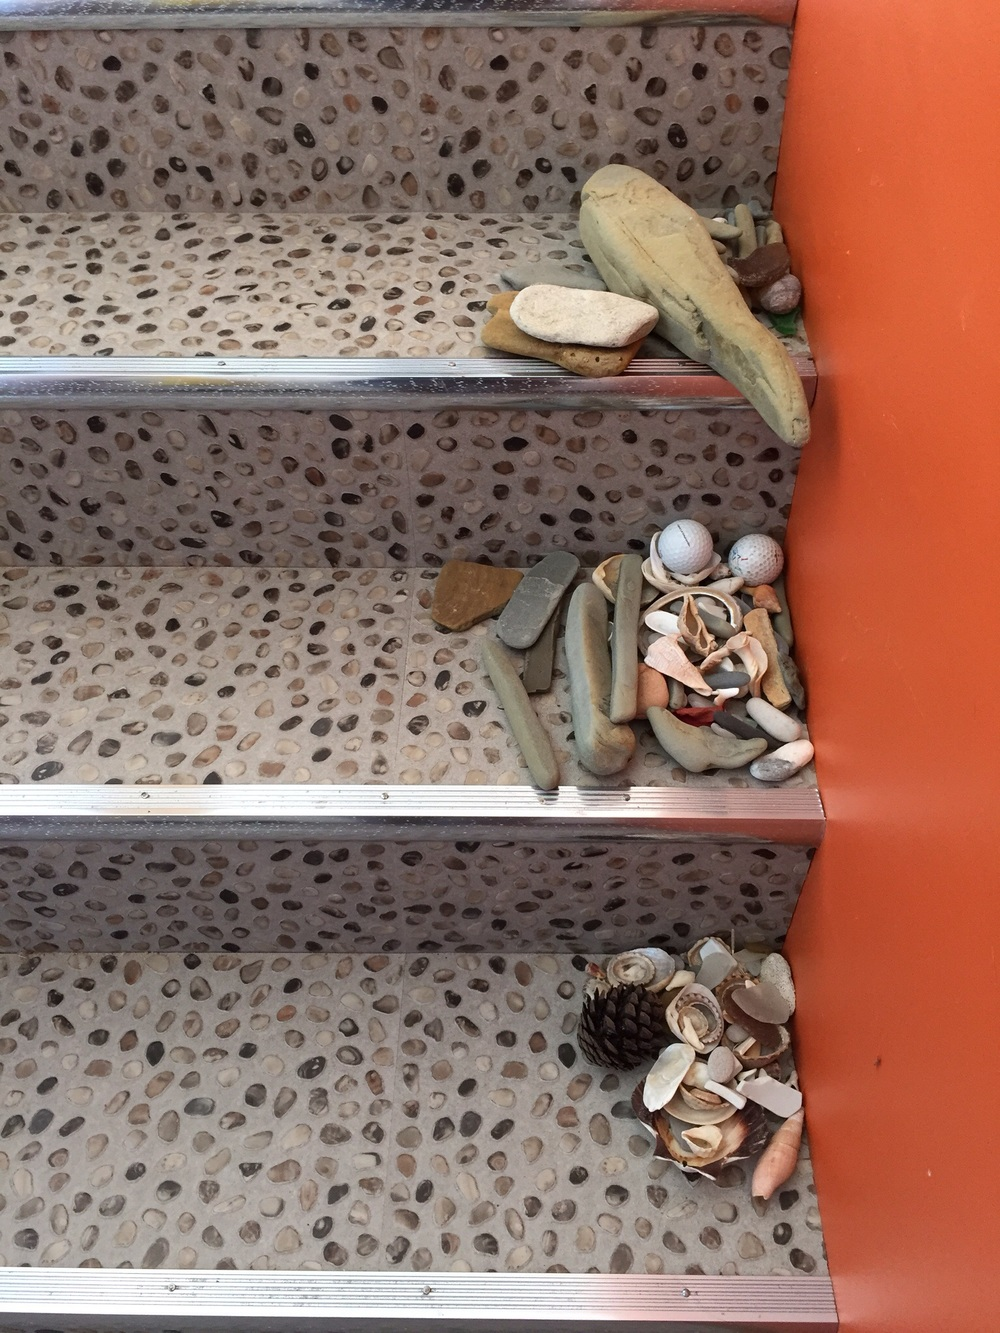 Every day more rocks shells and sea glass are deposited on the stairs - the beachcombing treaure is everywhere